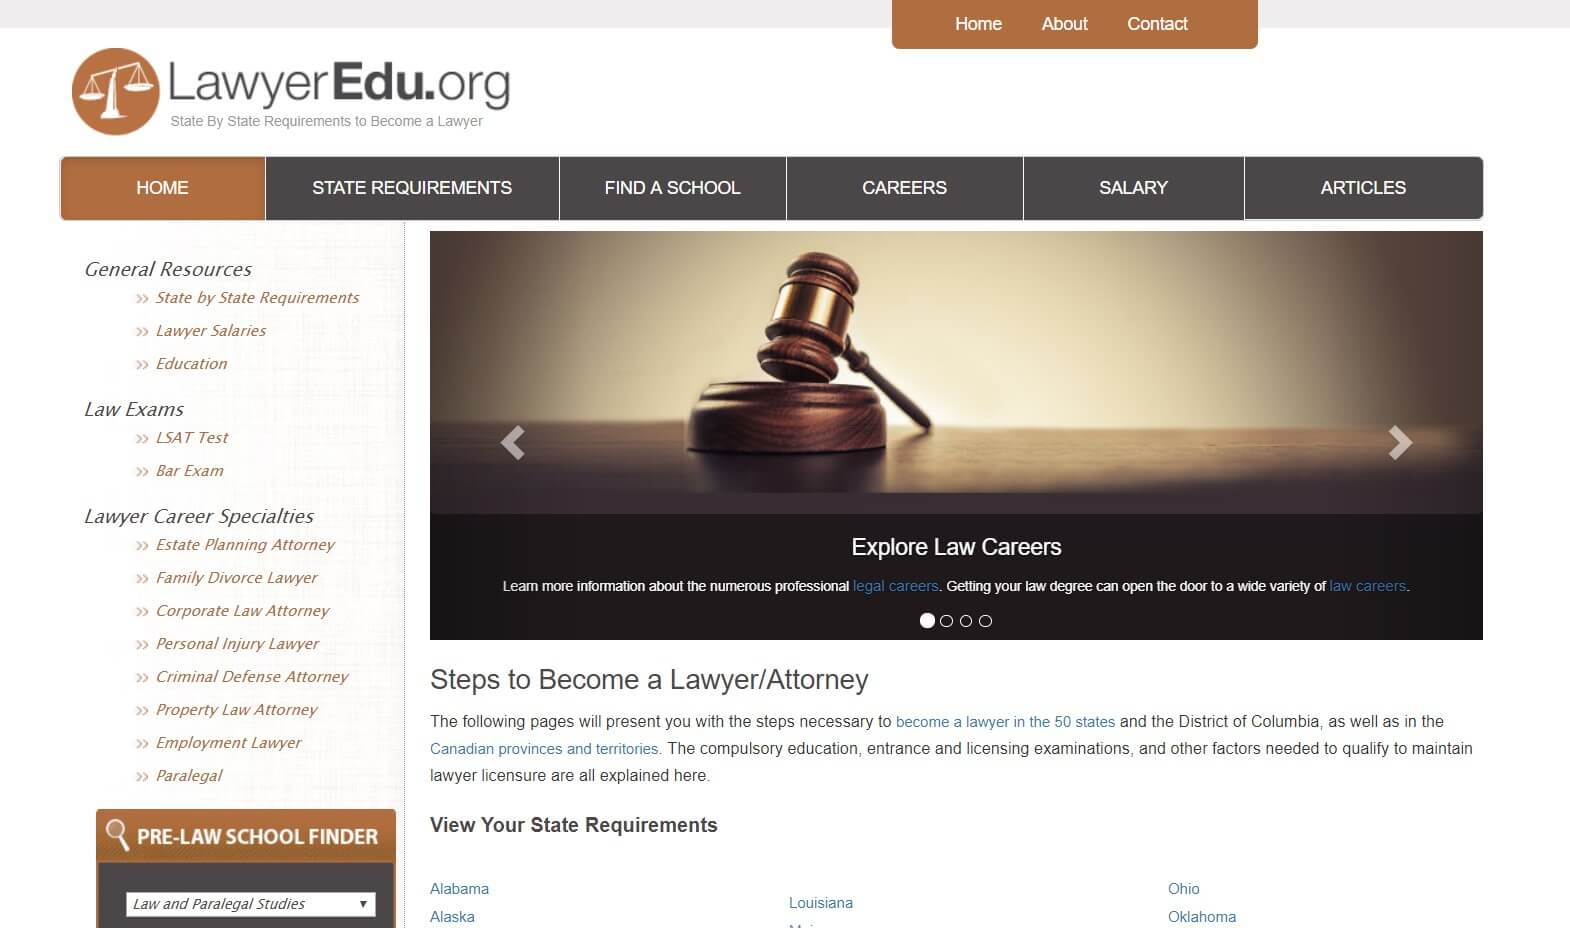 Law career: LawyerEdu.org